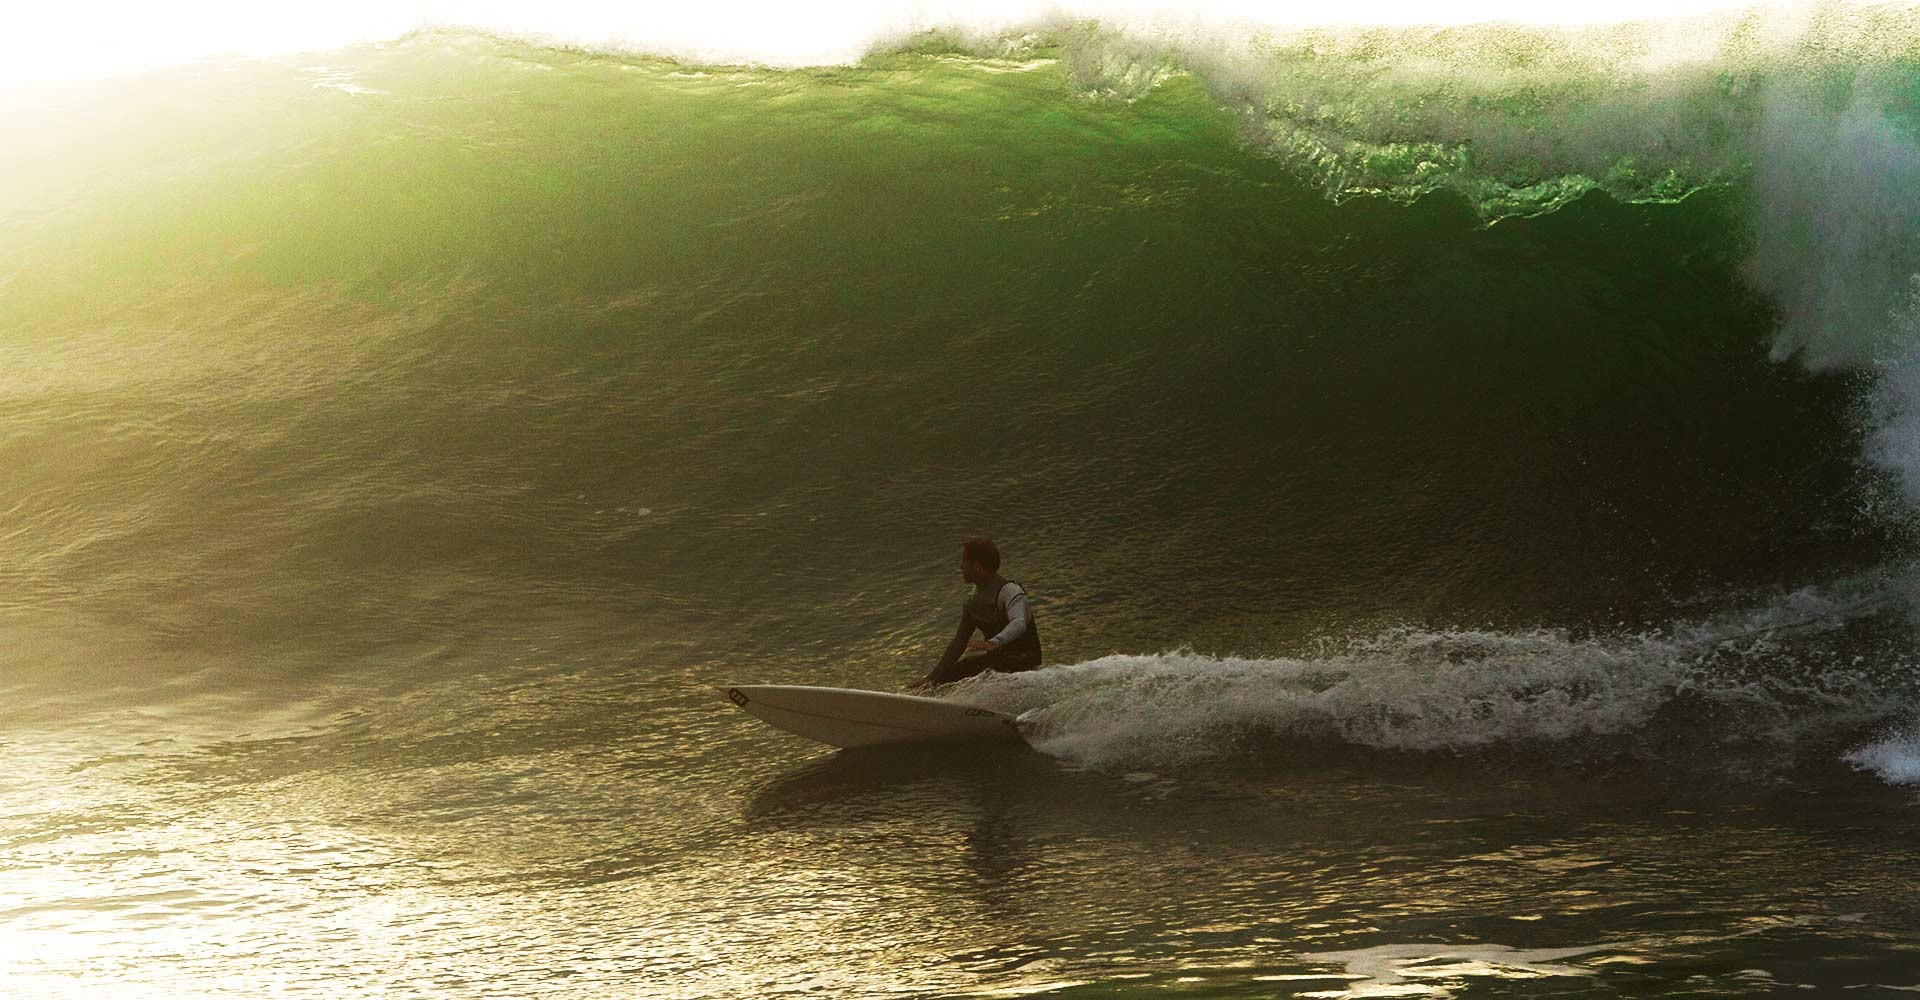 Essential, Micasurfboards, the-surfboard-shop, surfing, surfboard, big-wave, big-wave-surfing